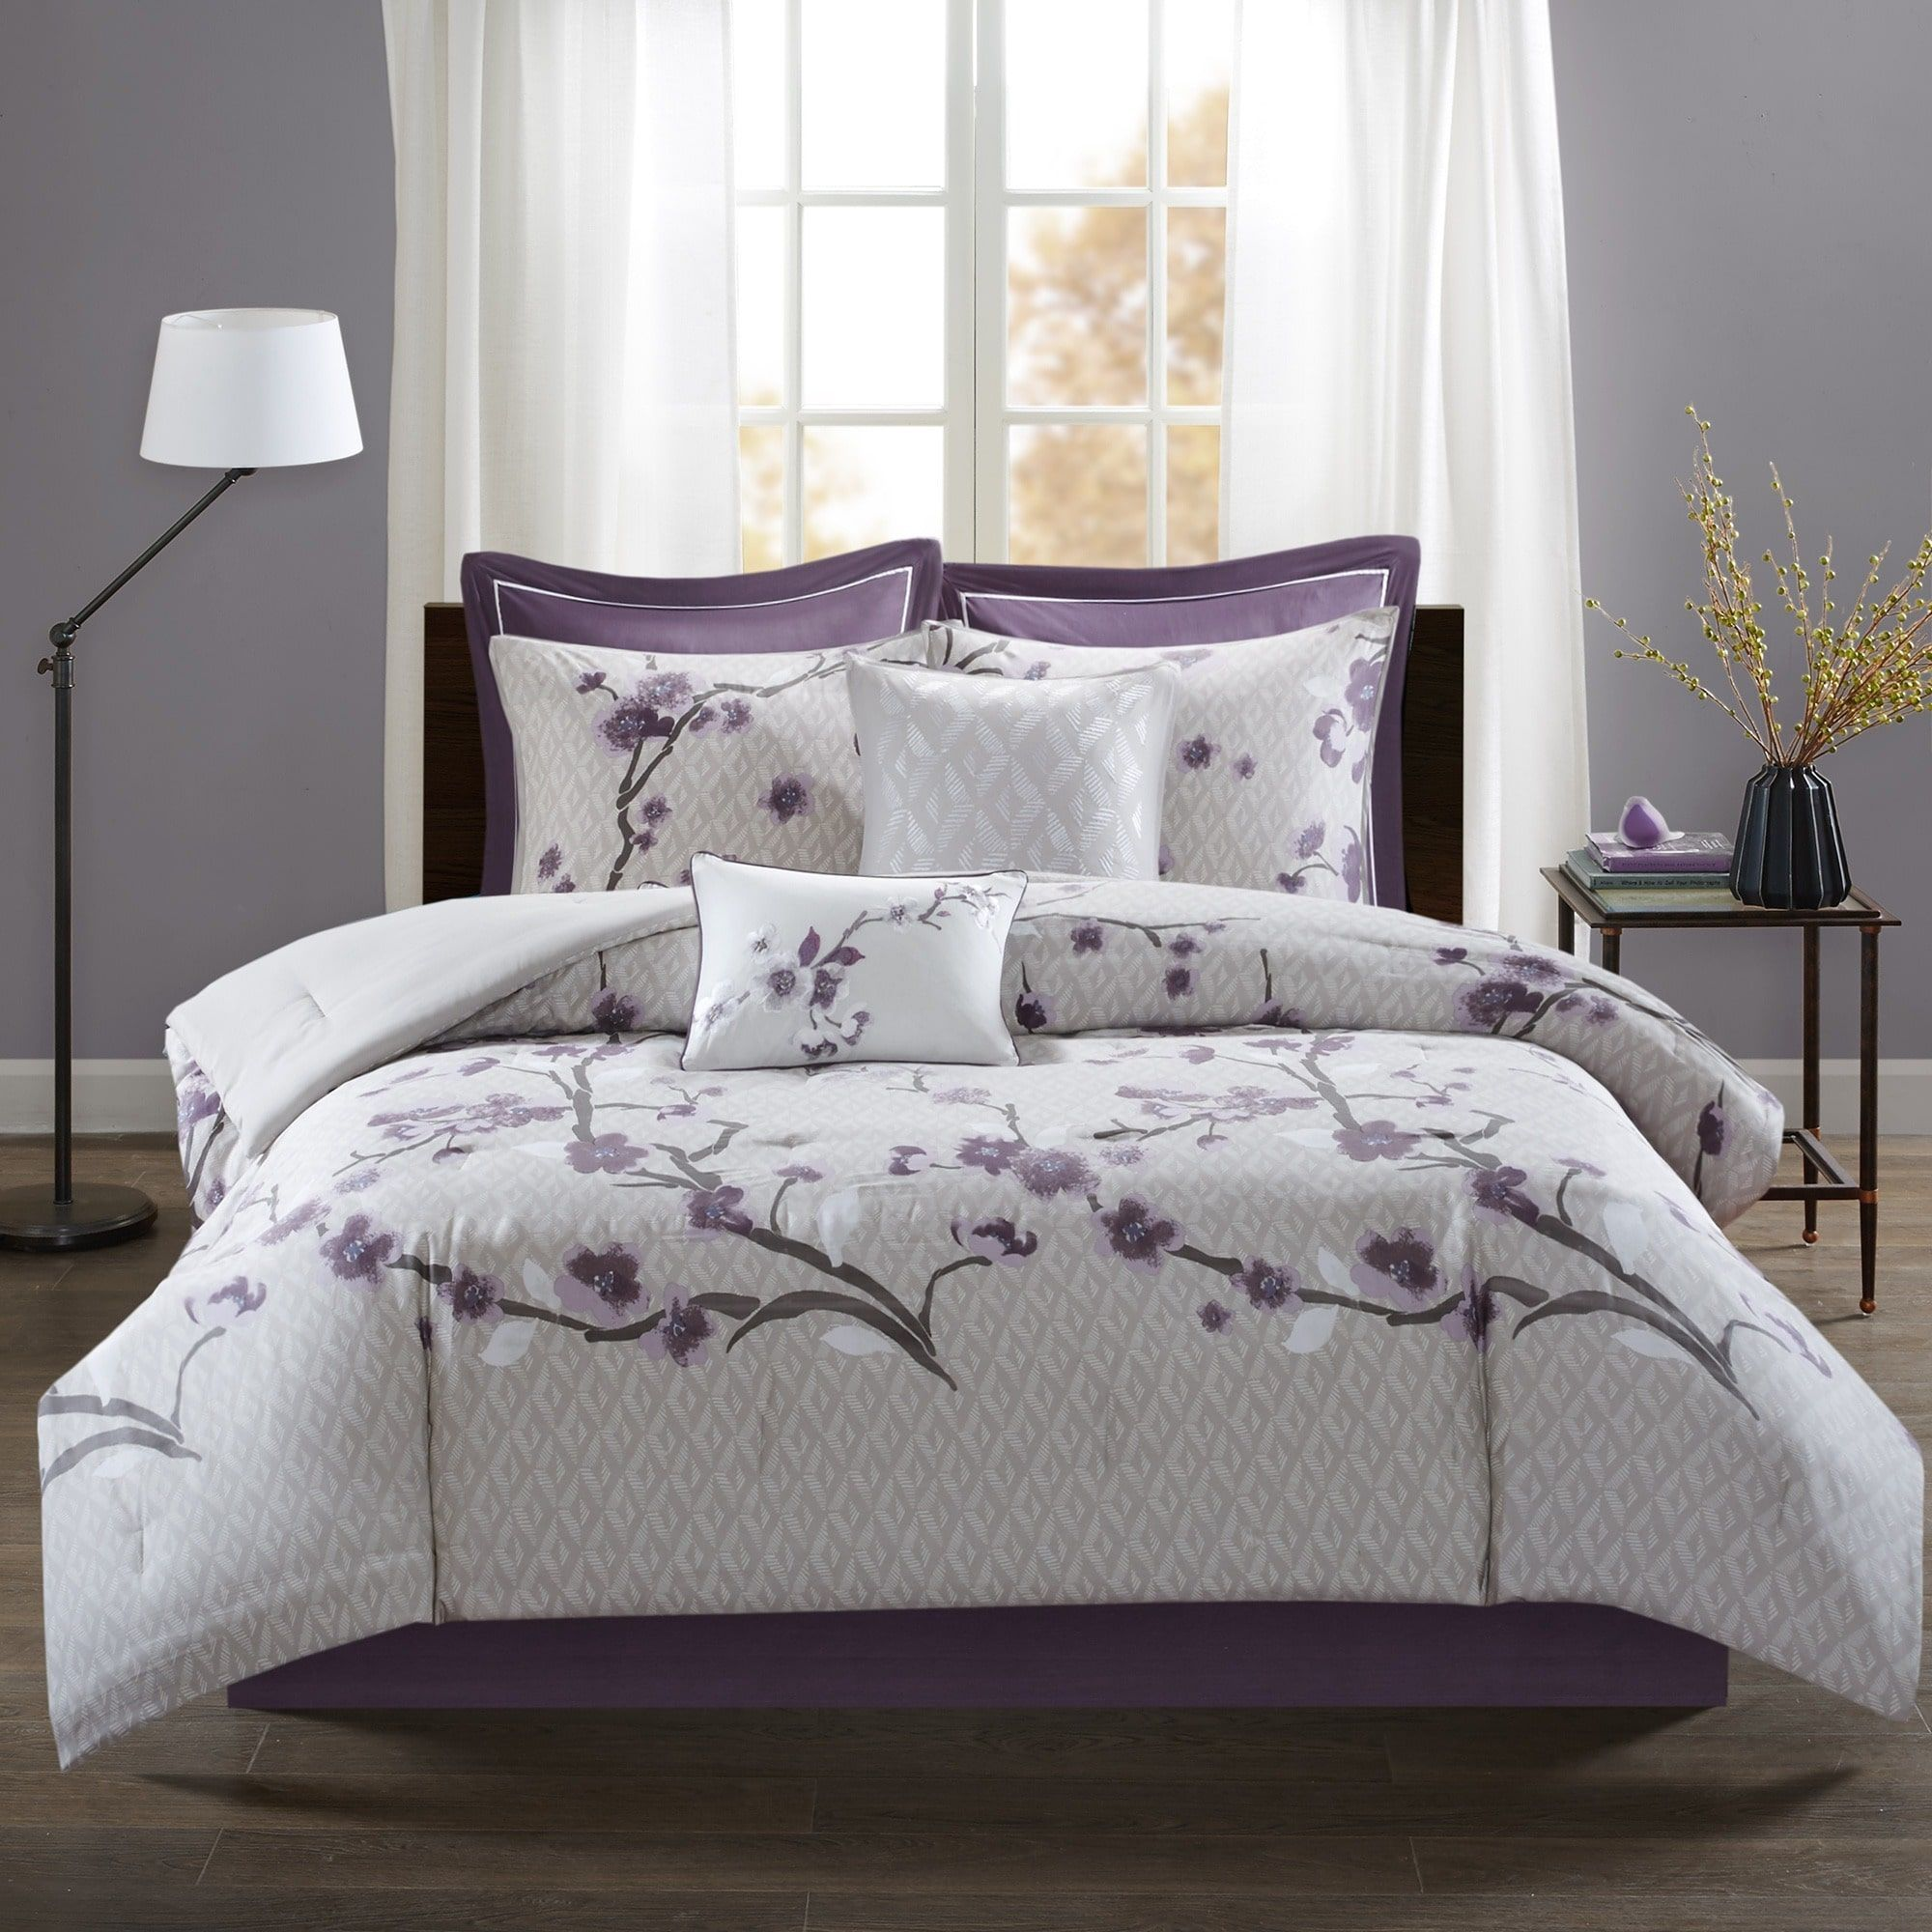 set king premium cal microfiber ultra series cover coin lavender duvet california life ajoy asp shopexd for quality soft world inc print comfort ce and